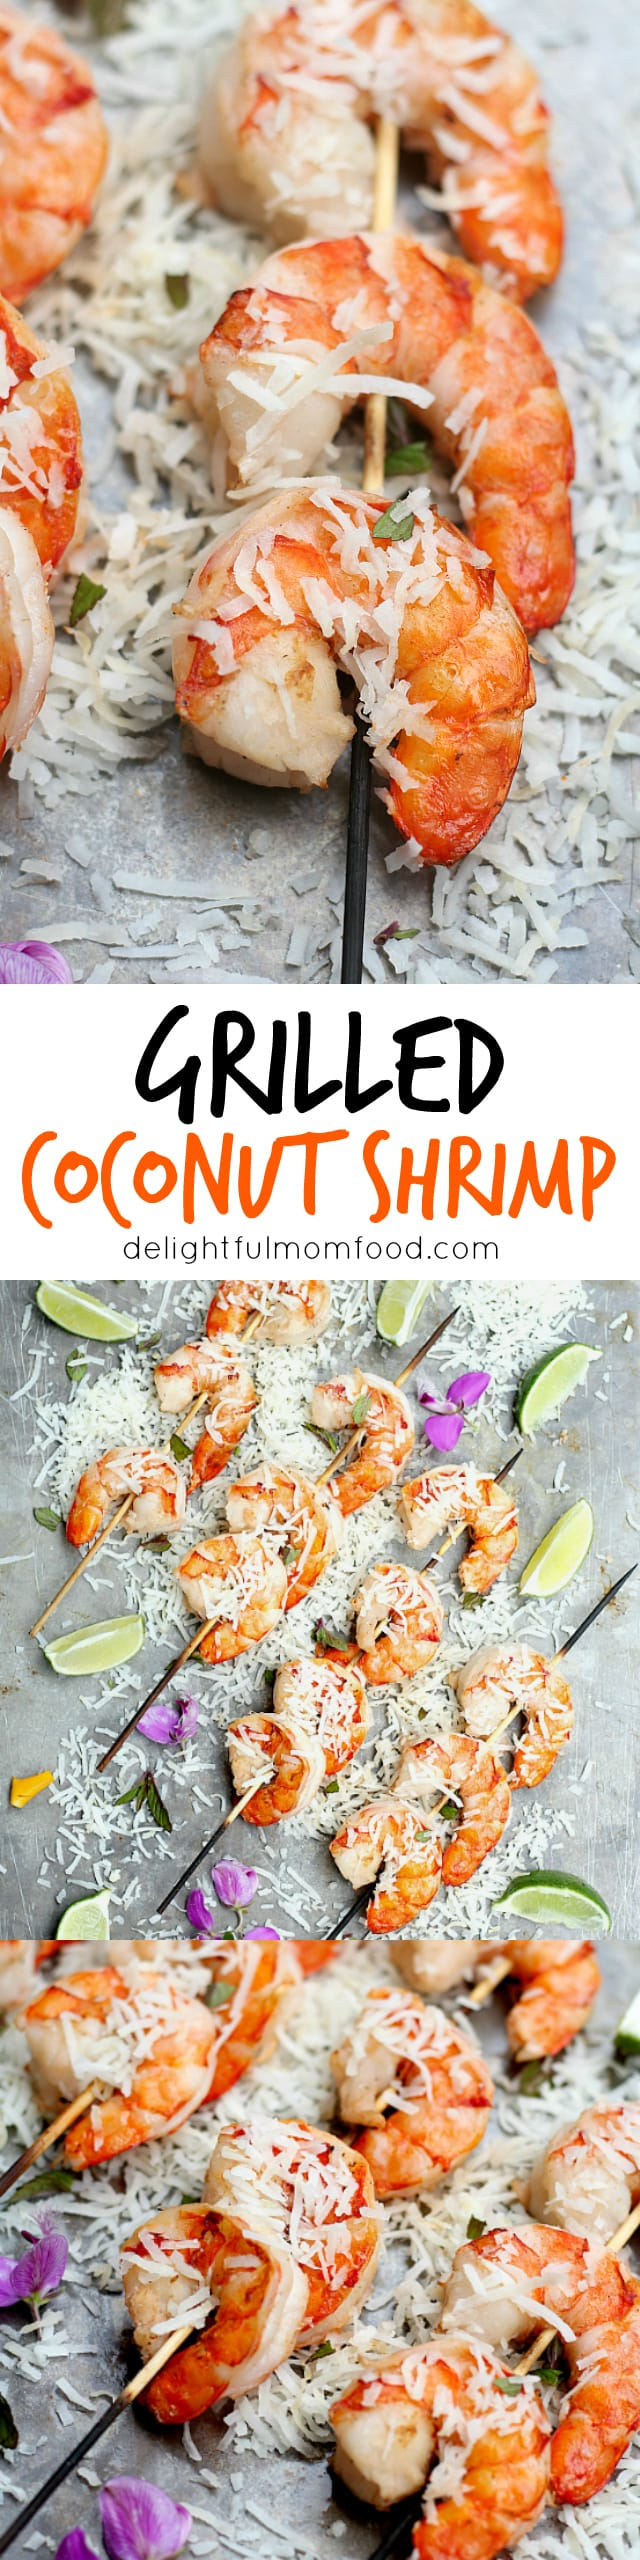 Coconut milk shrimp skewers recipe